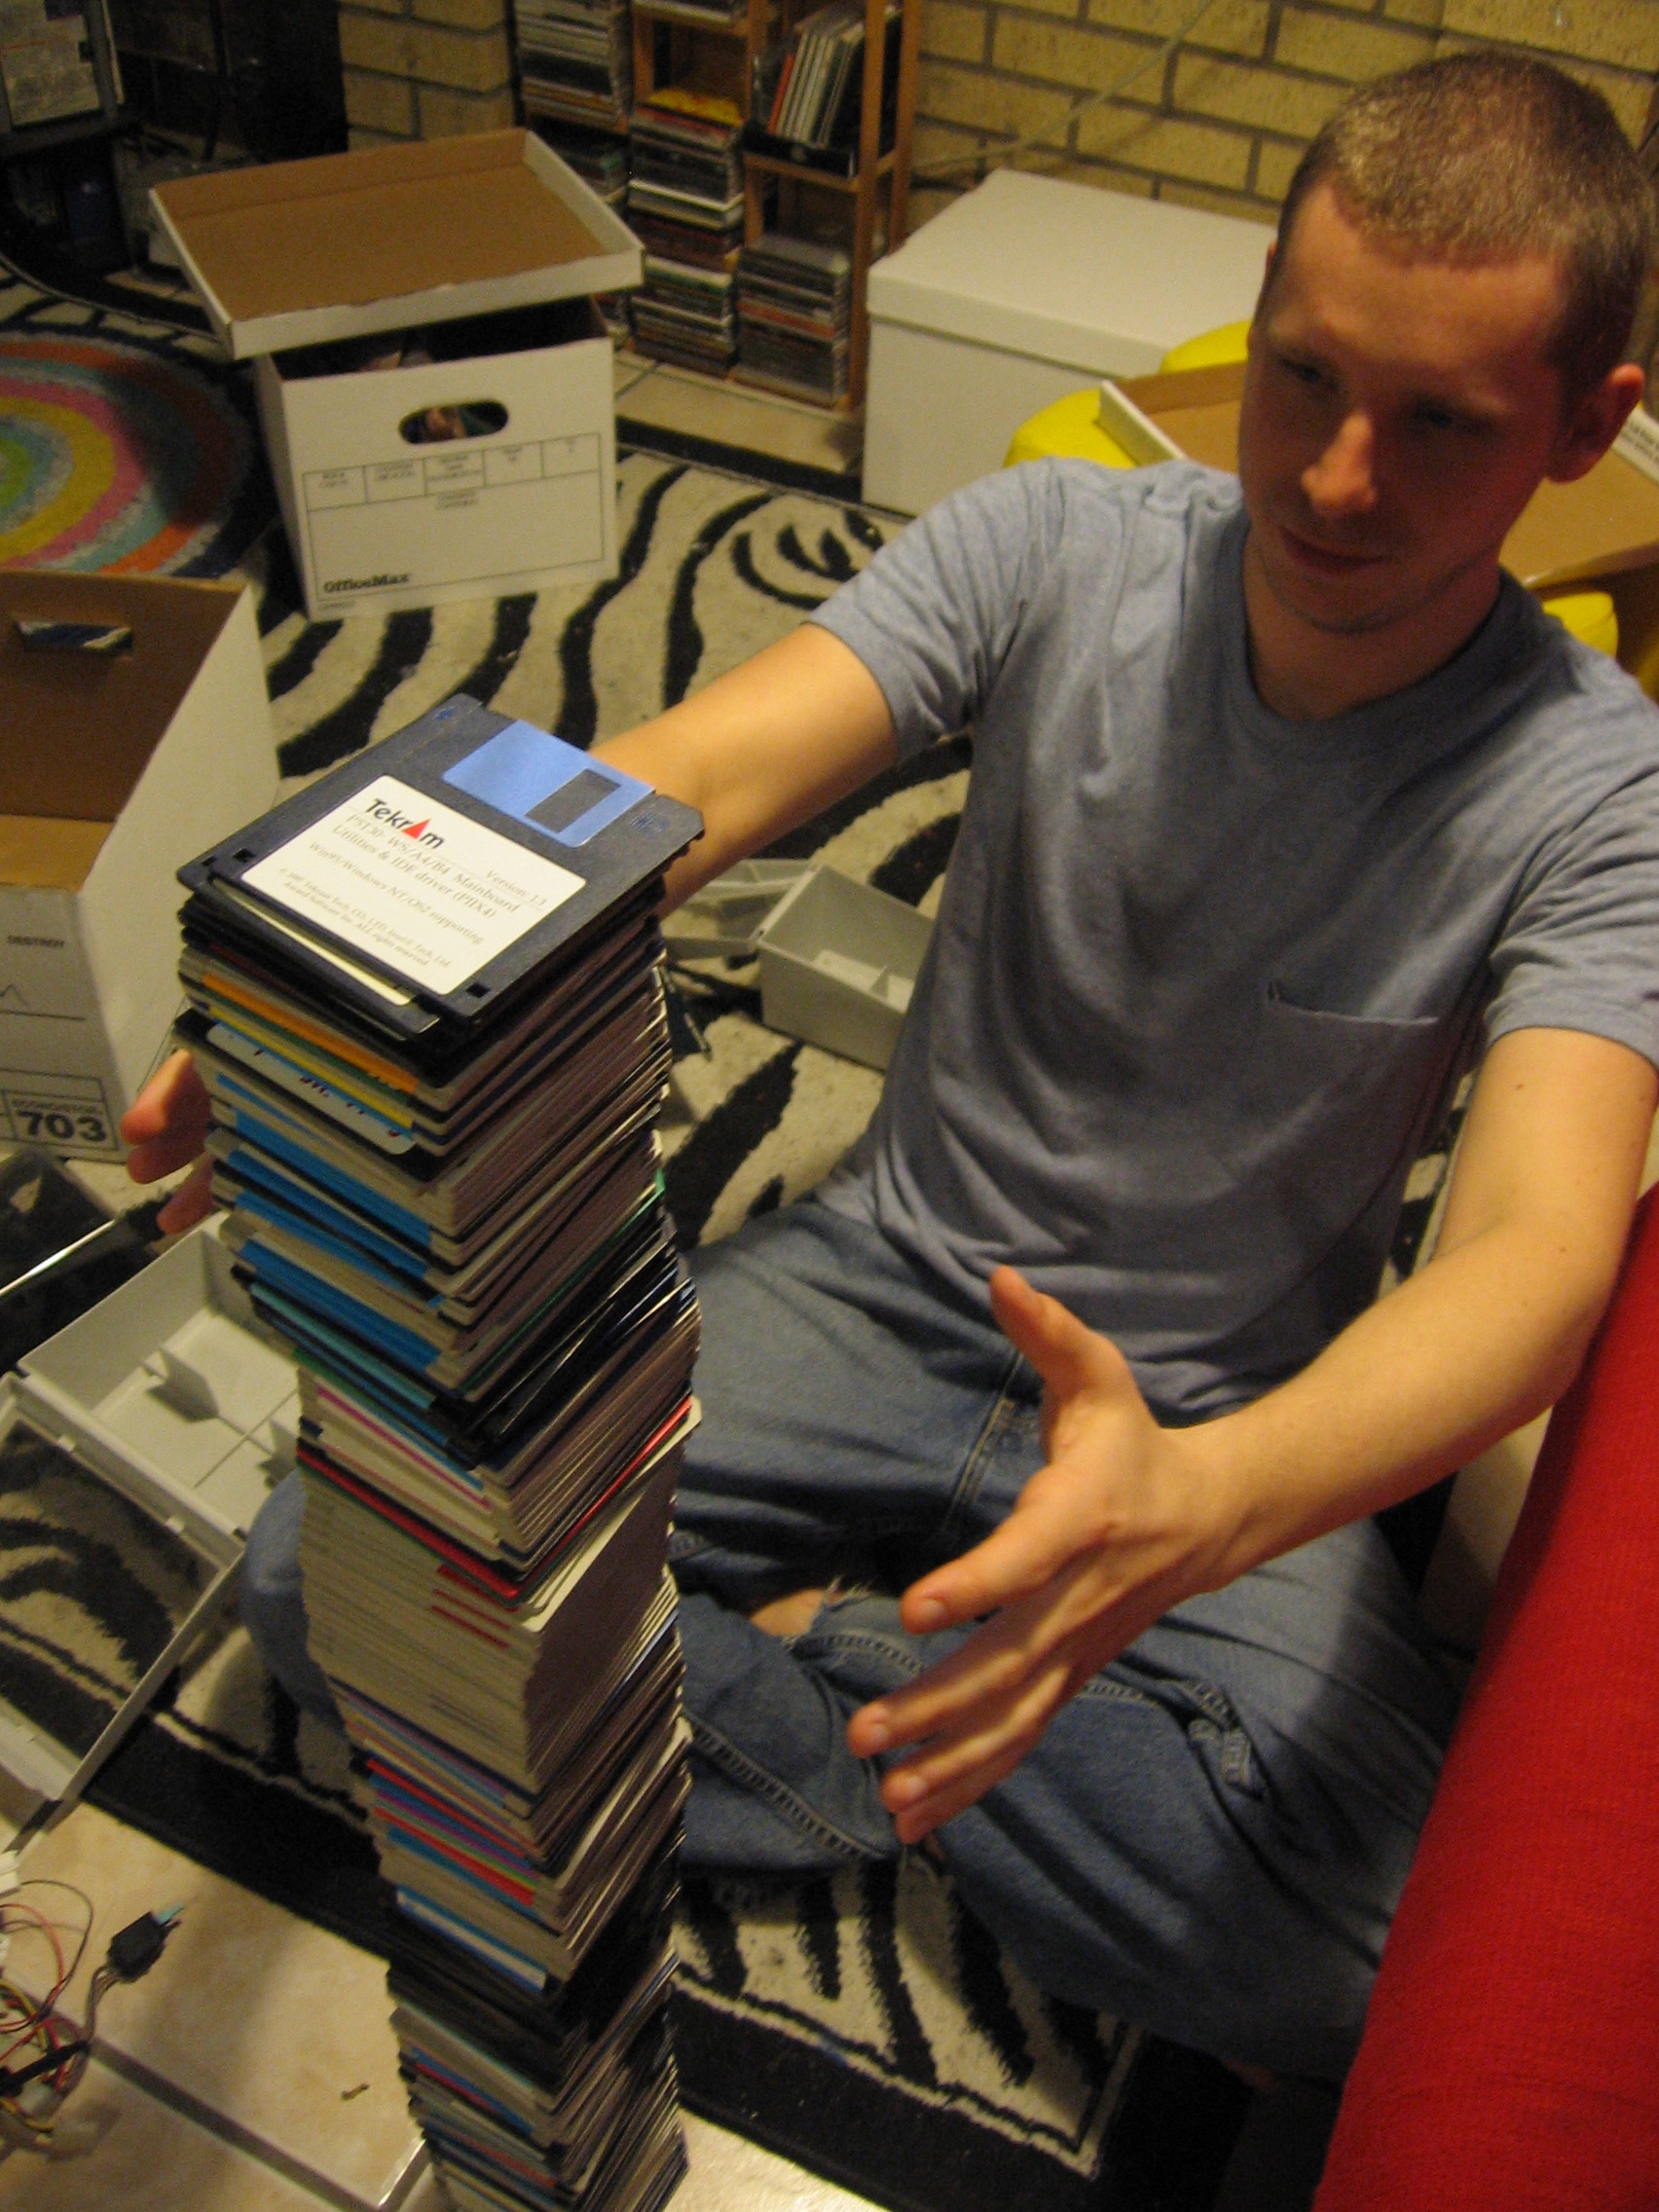 Balancing a tall stack of floppy disks